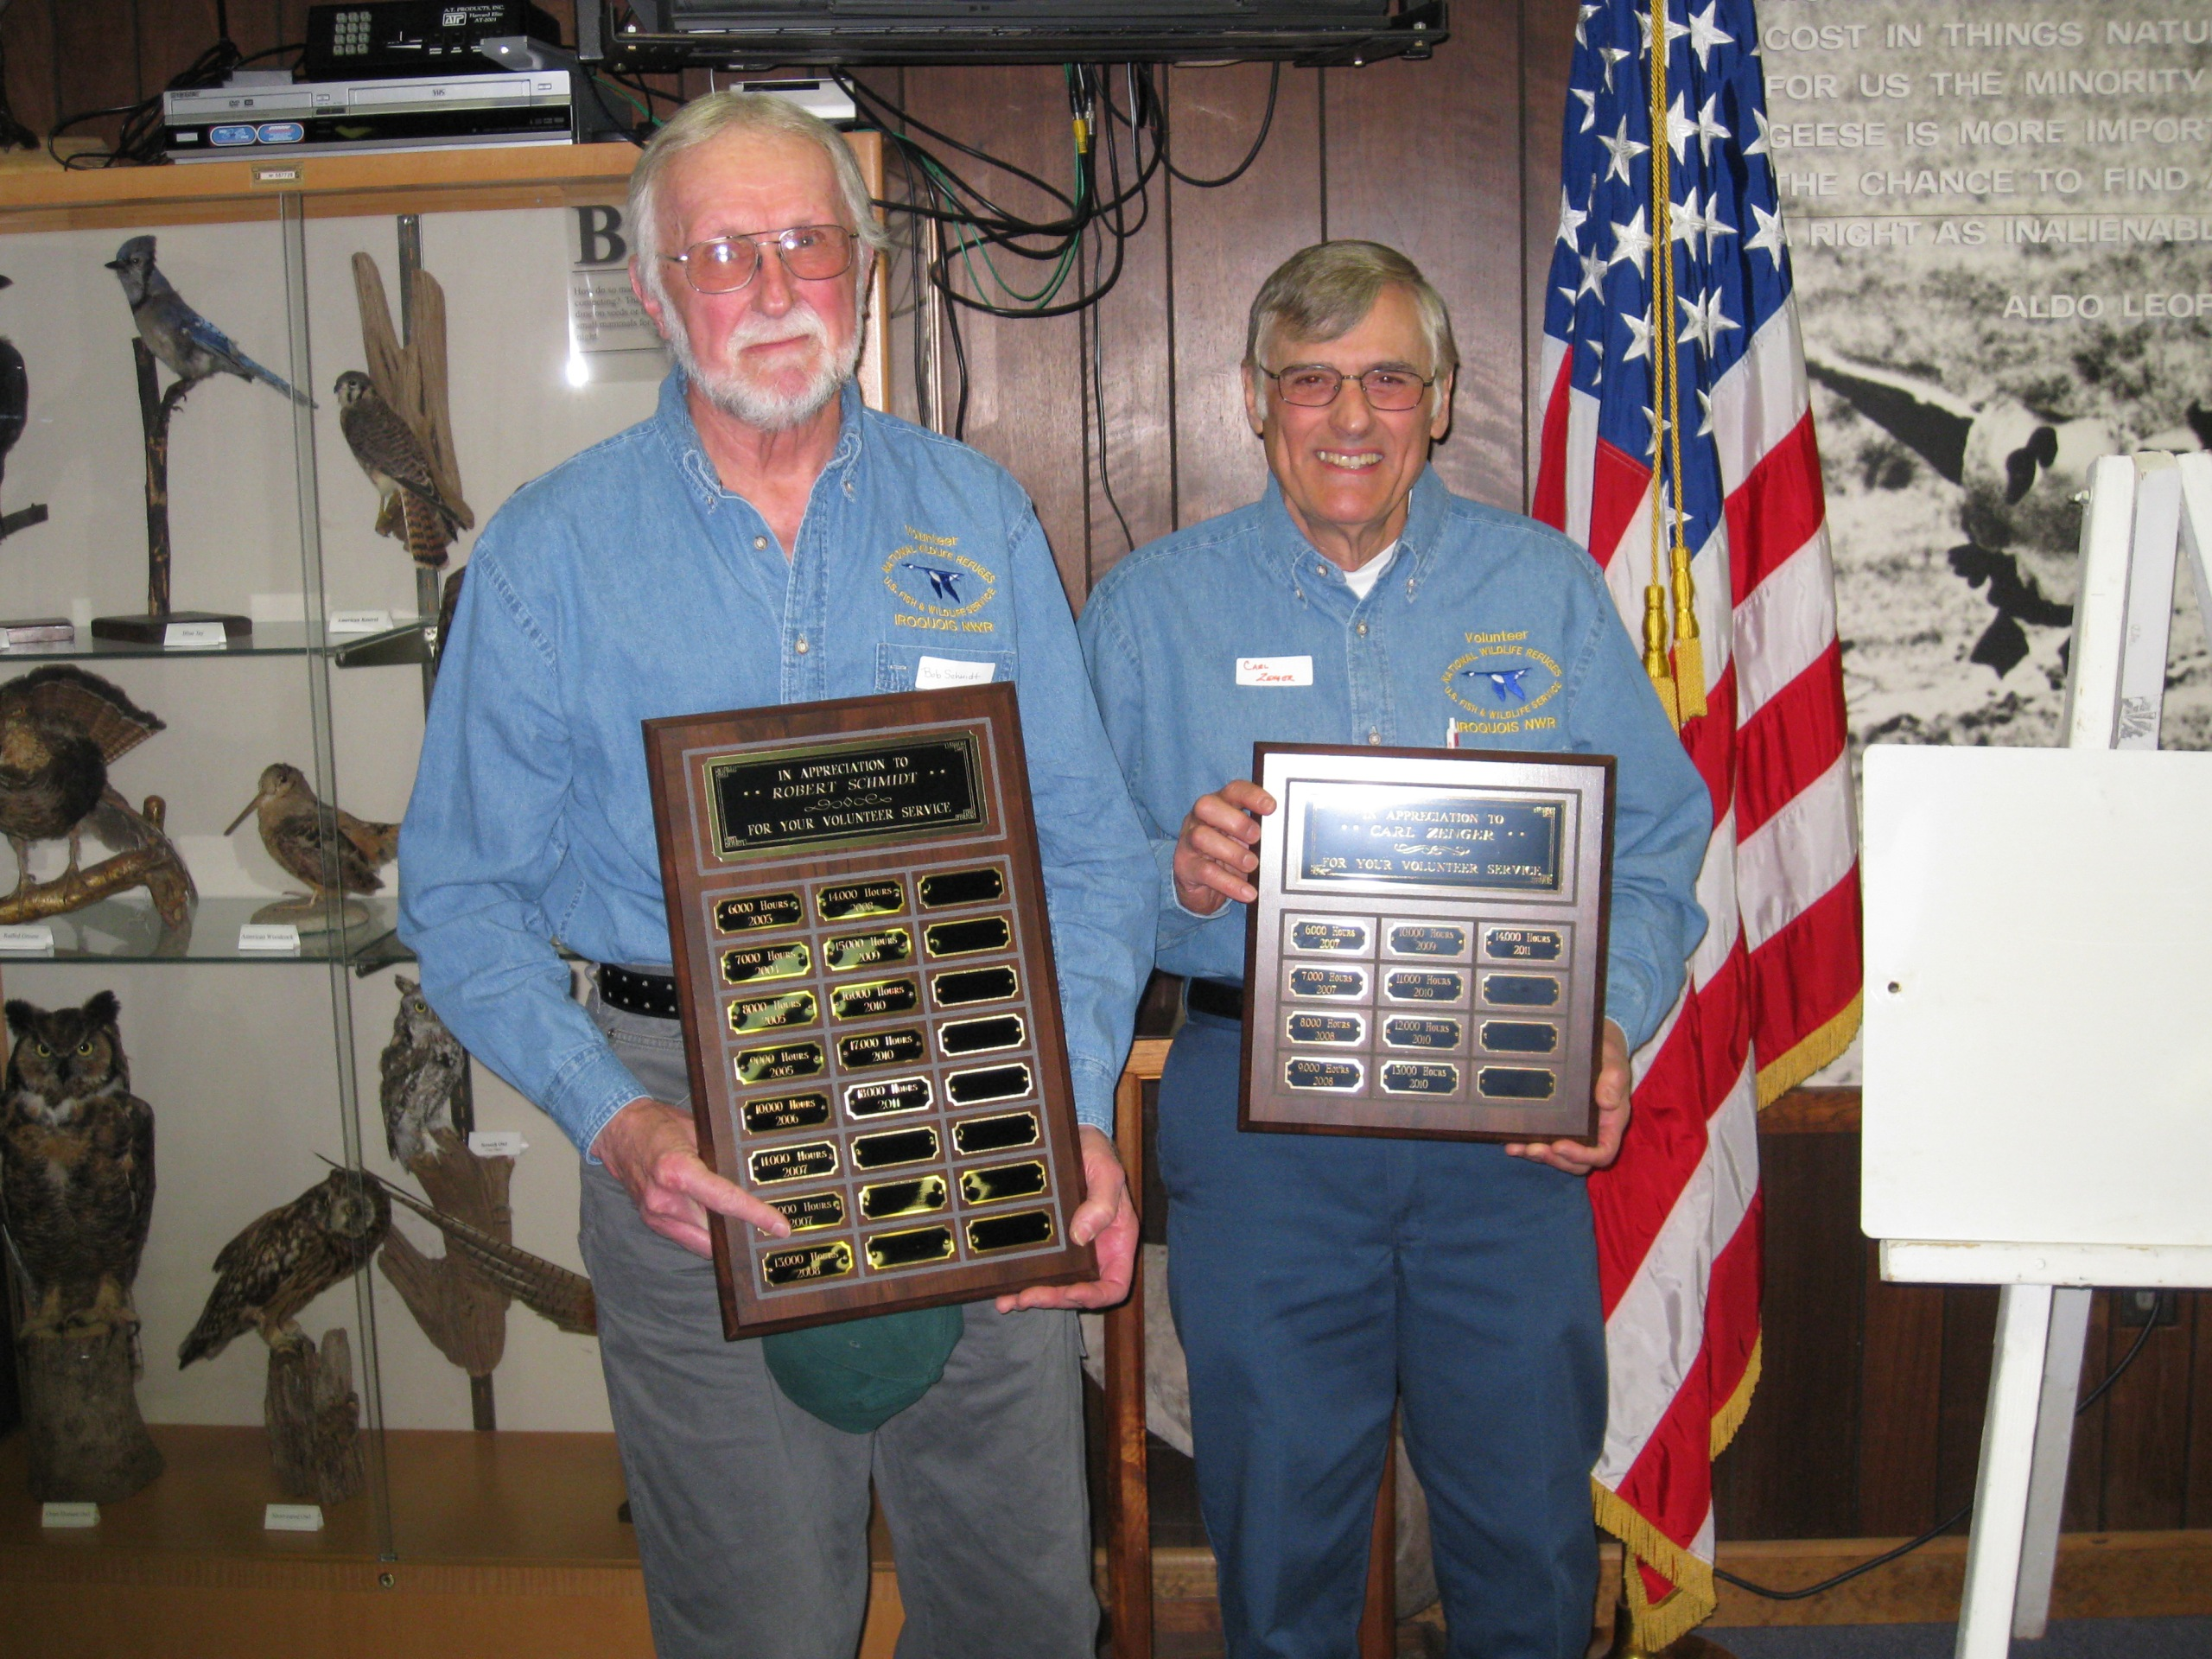 Bob Schmidt and Carl Zenger. Credit: USFWS